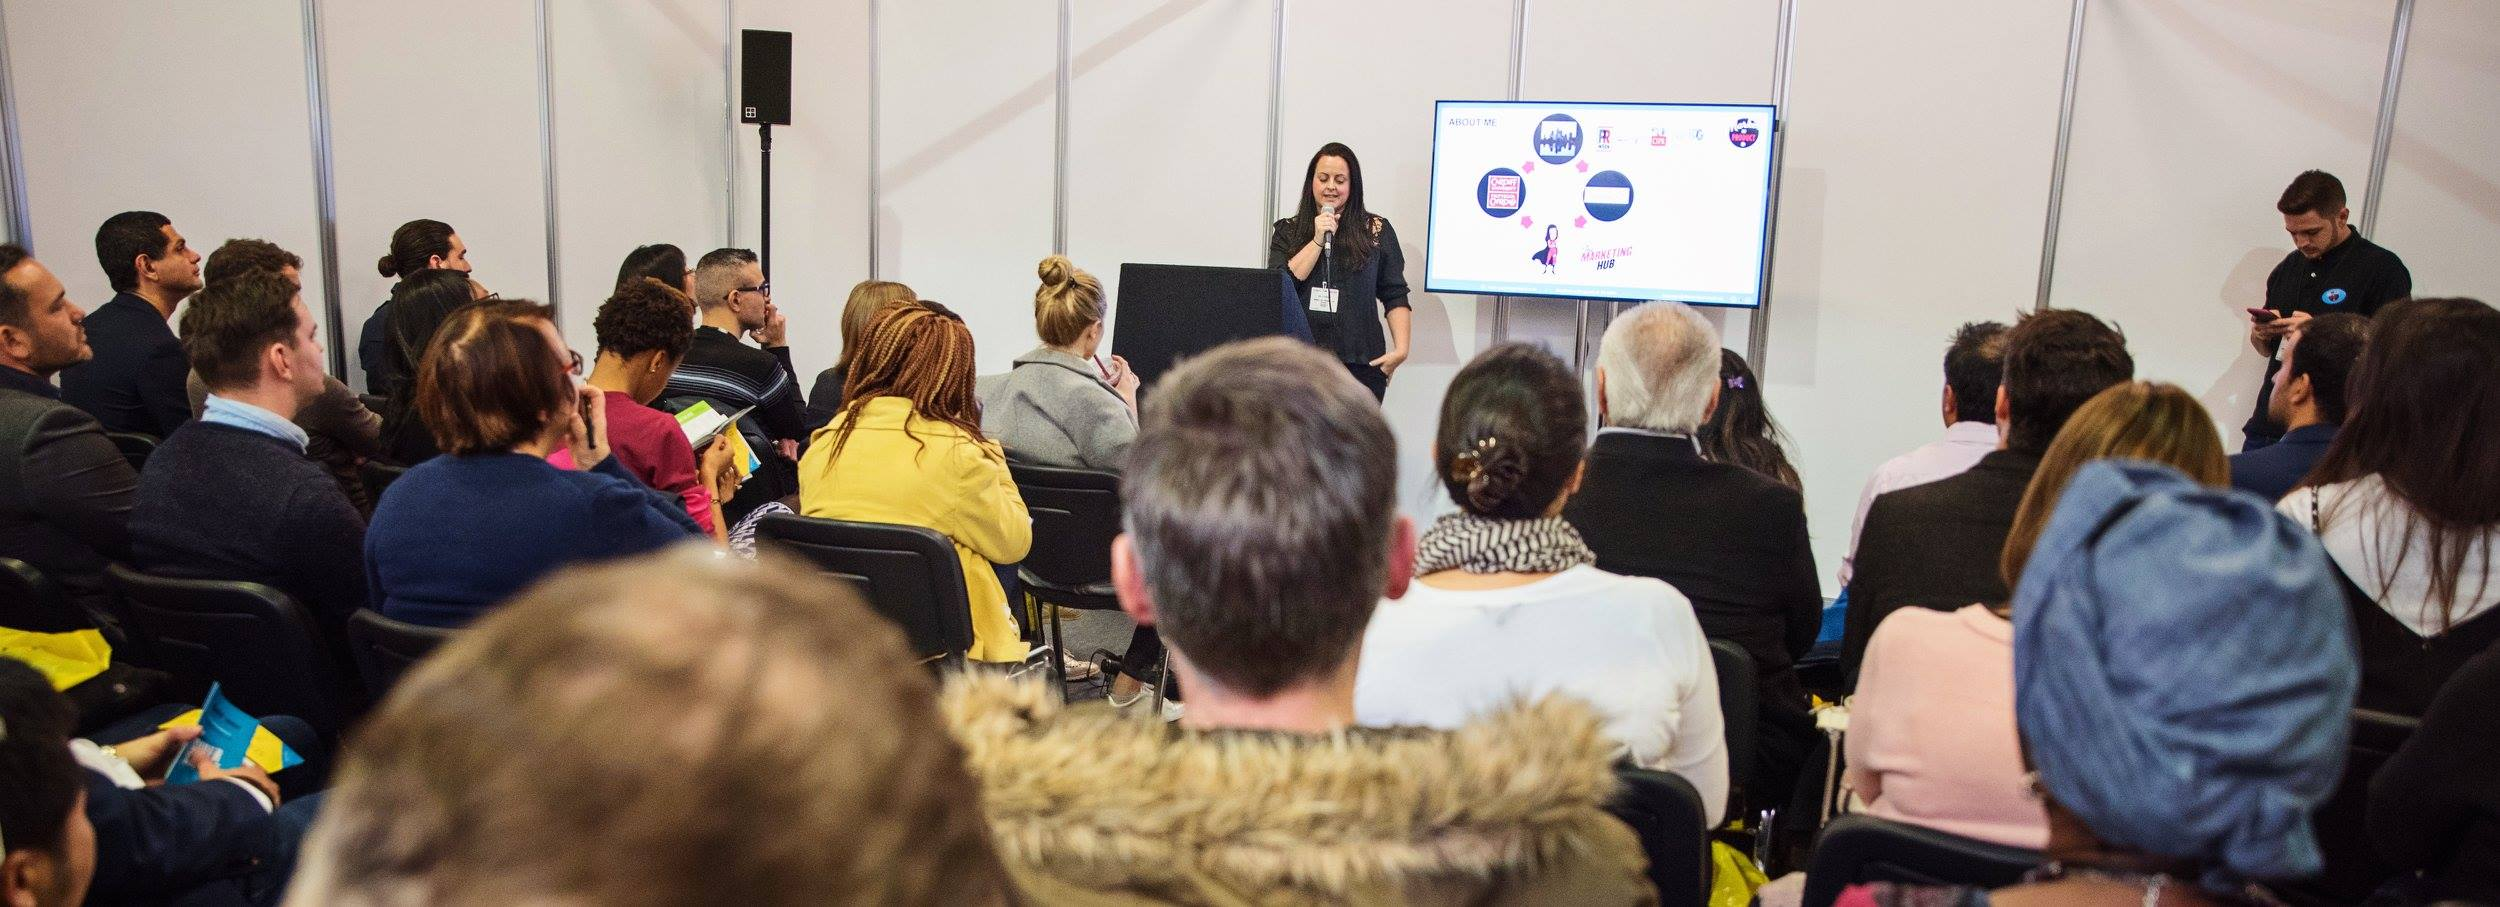 Kelly Teasdale presenting at The Business Show London